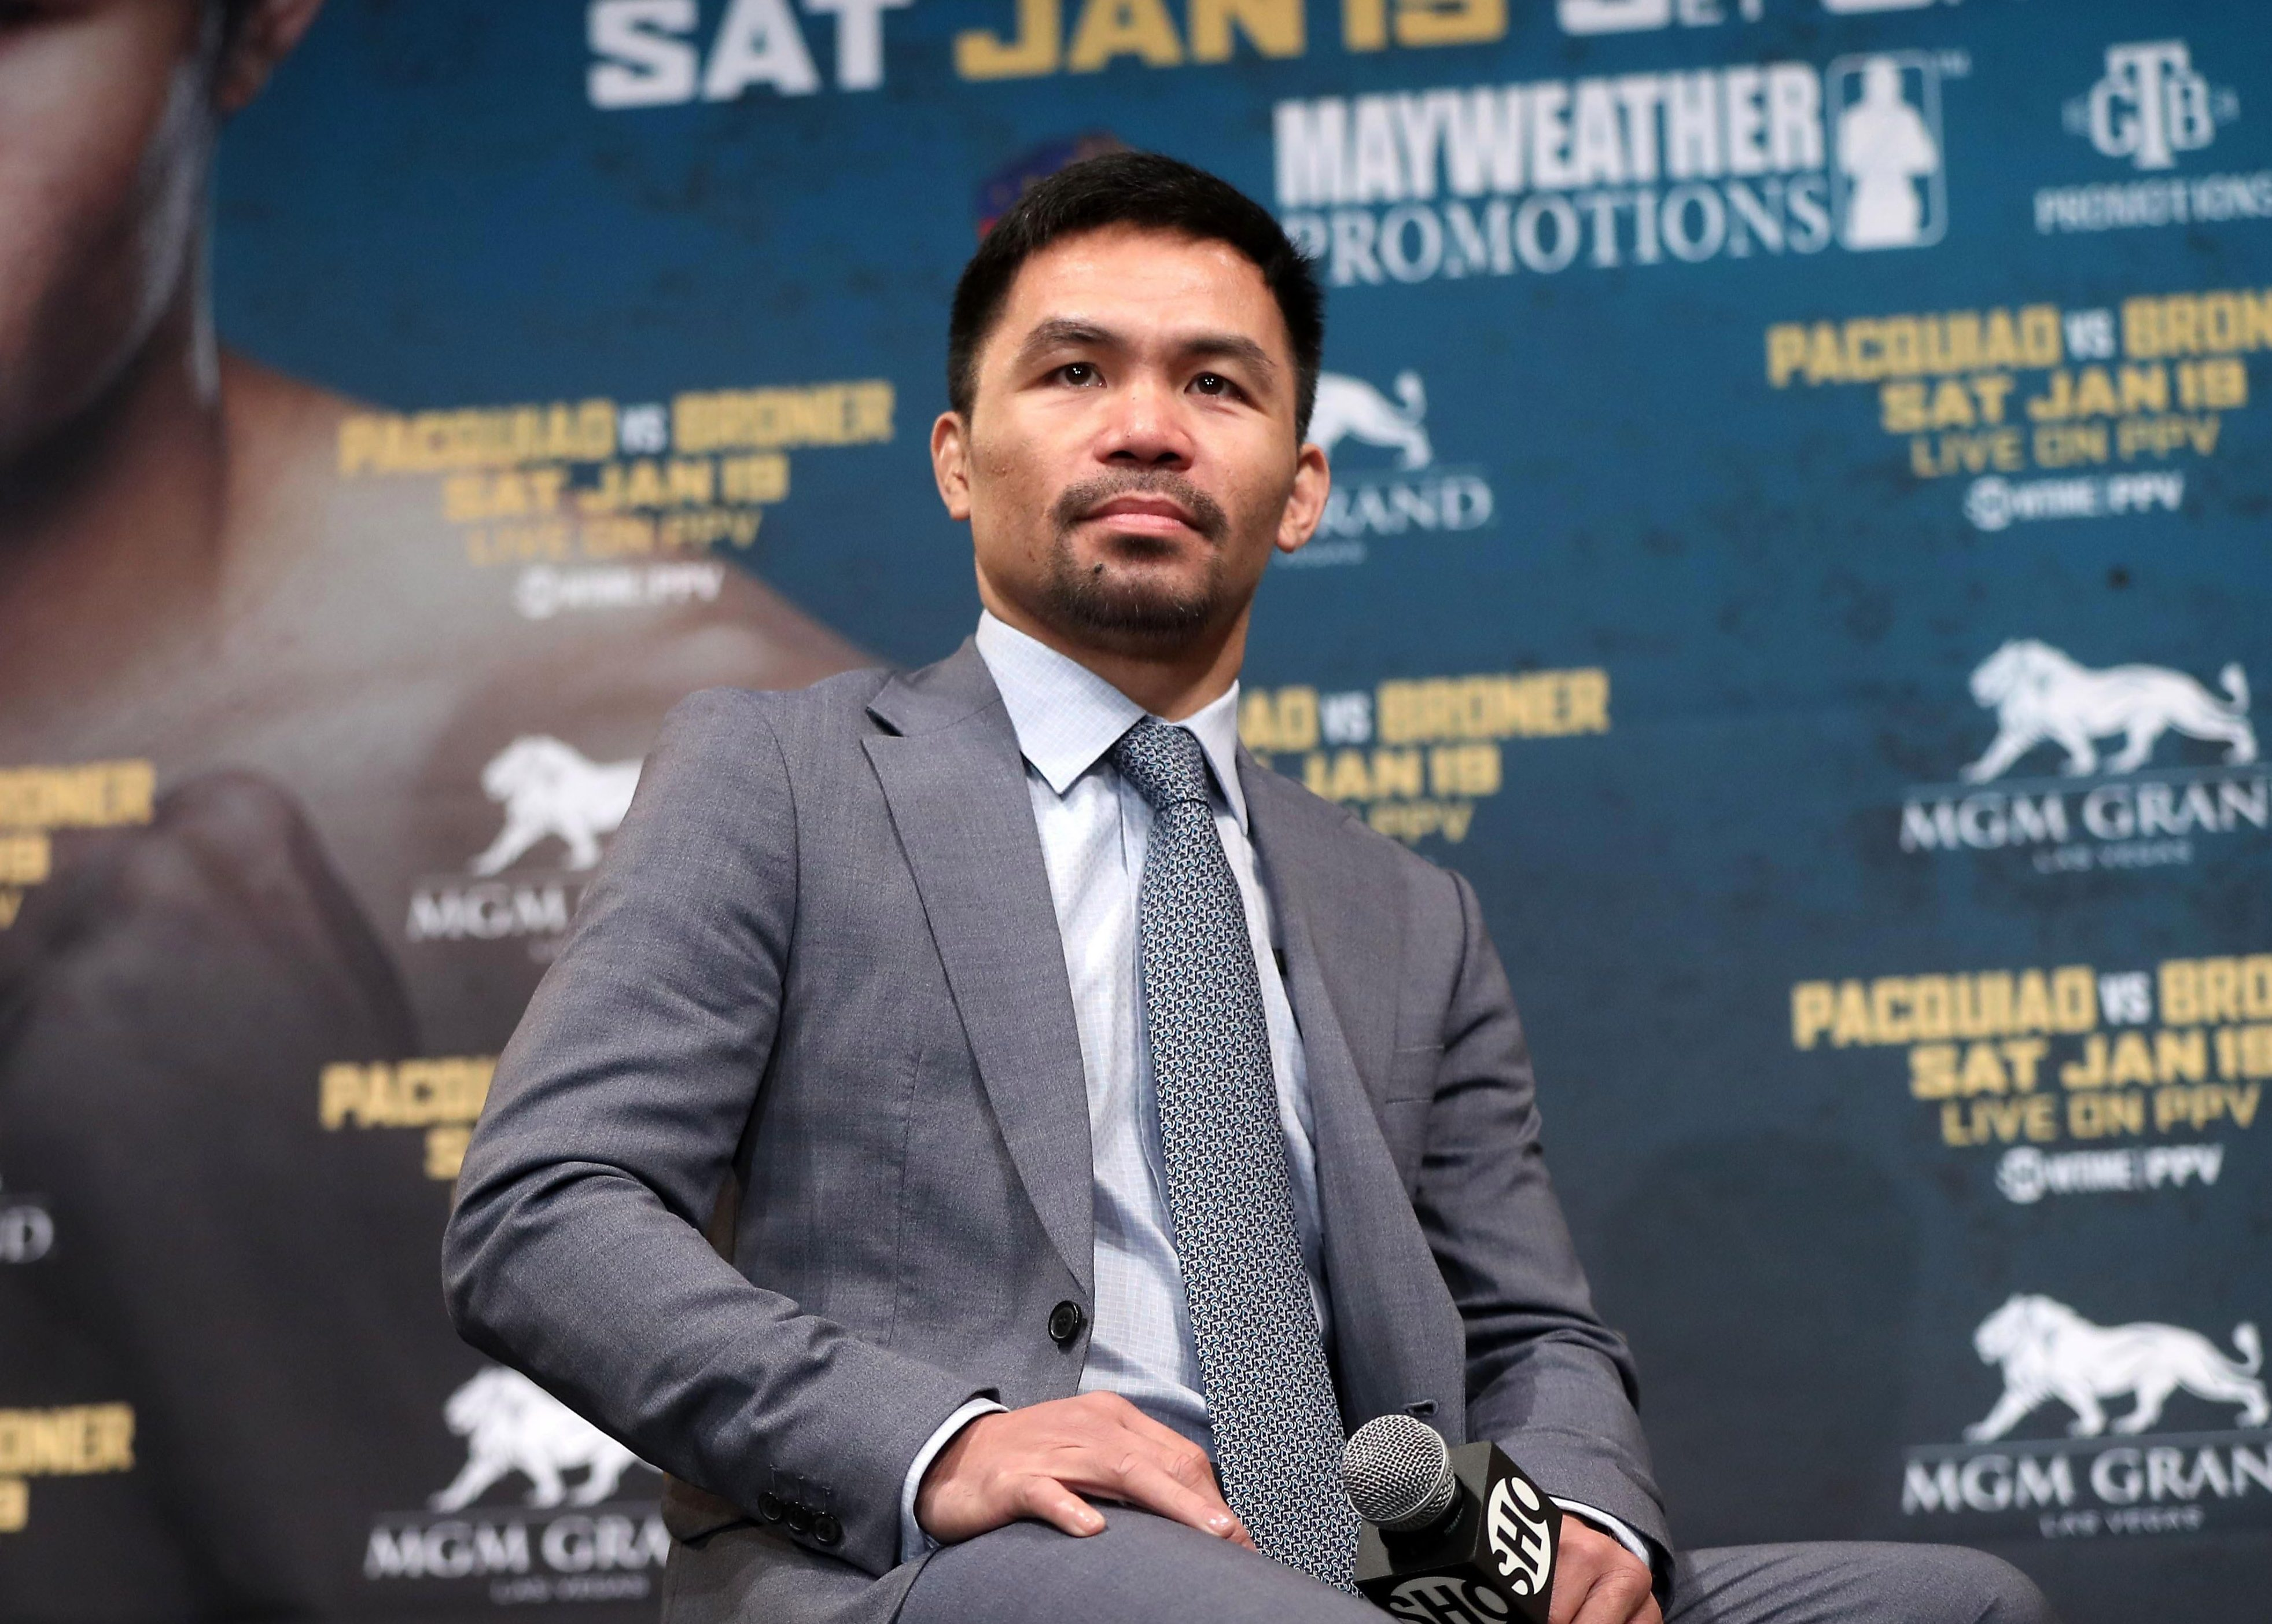 Manny Pacquiao will be looking to retain his WBA regular welterweight title against Adrien Broner